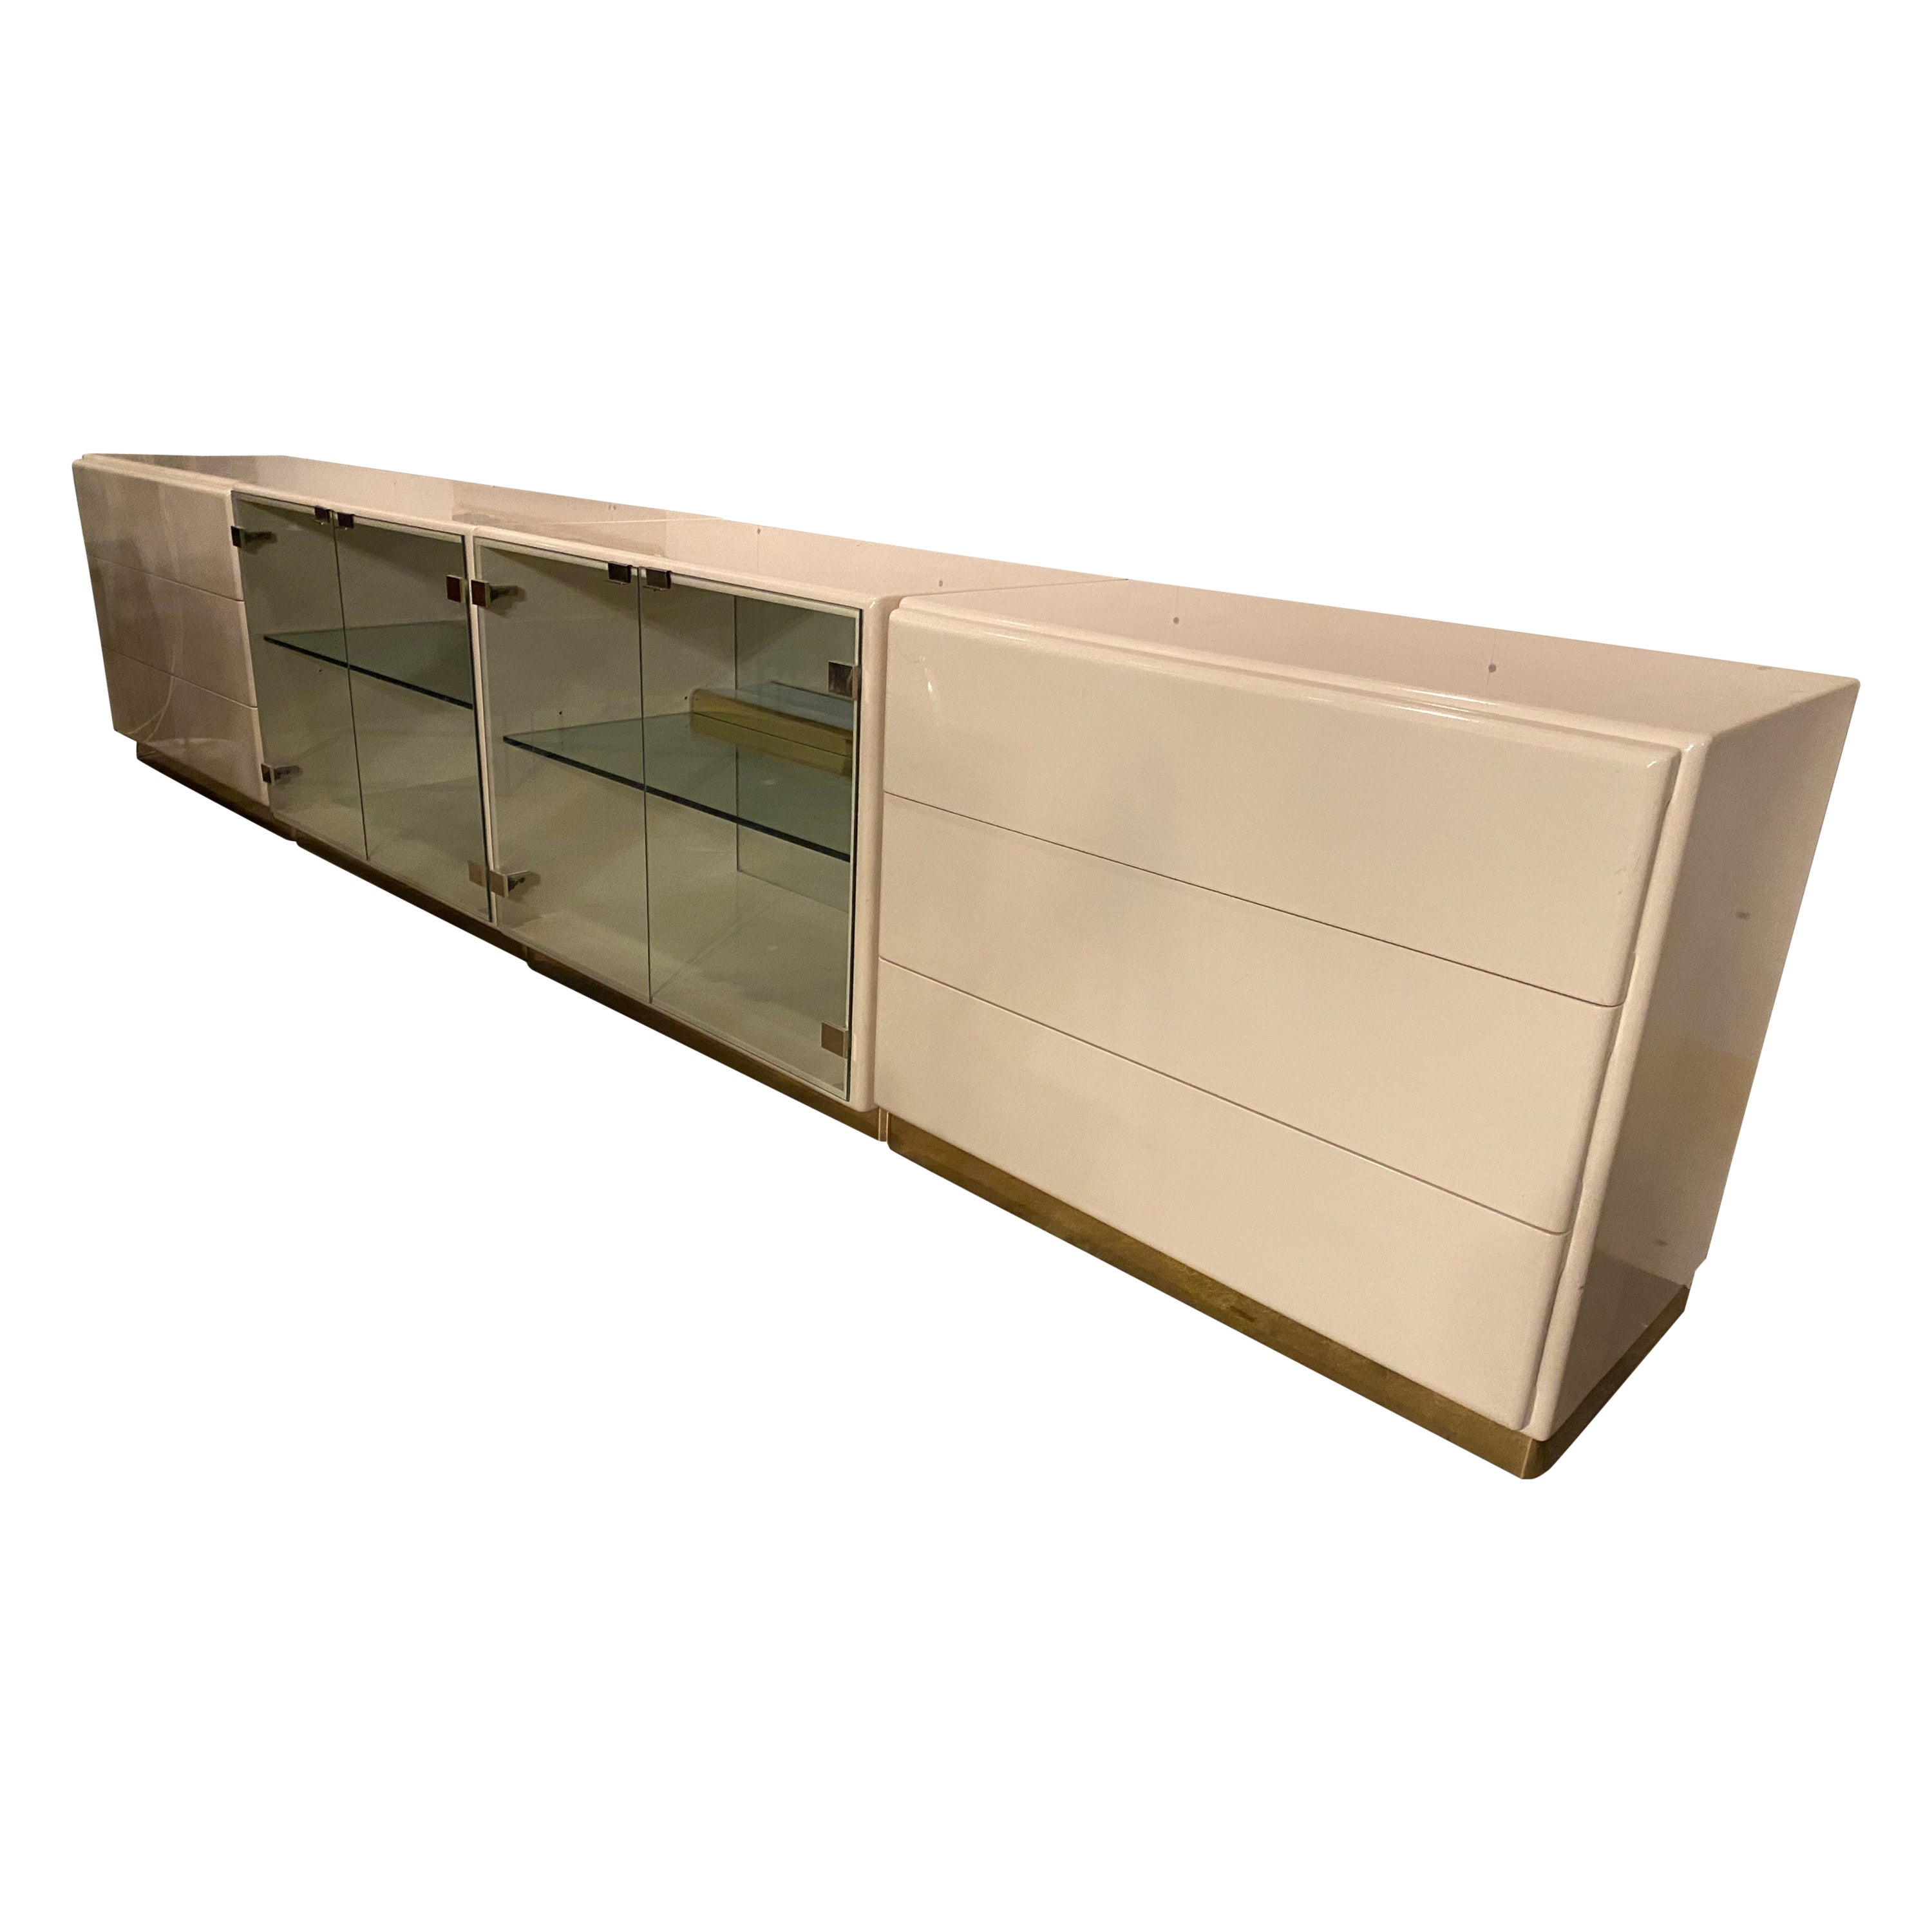 Vintage 1970s Ivory Lacquered Credenza by Milo Baughman for Thayer Coggin